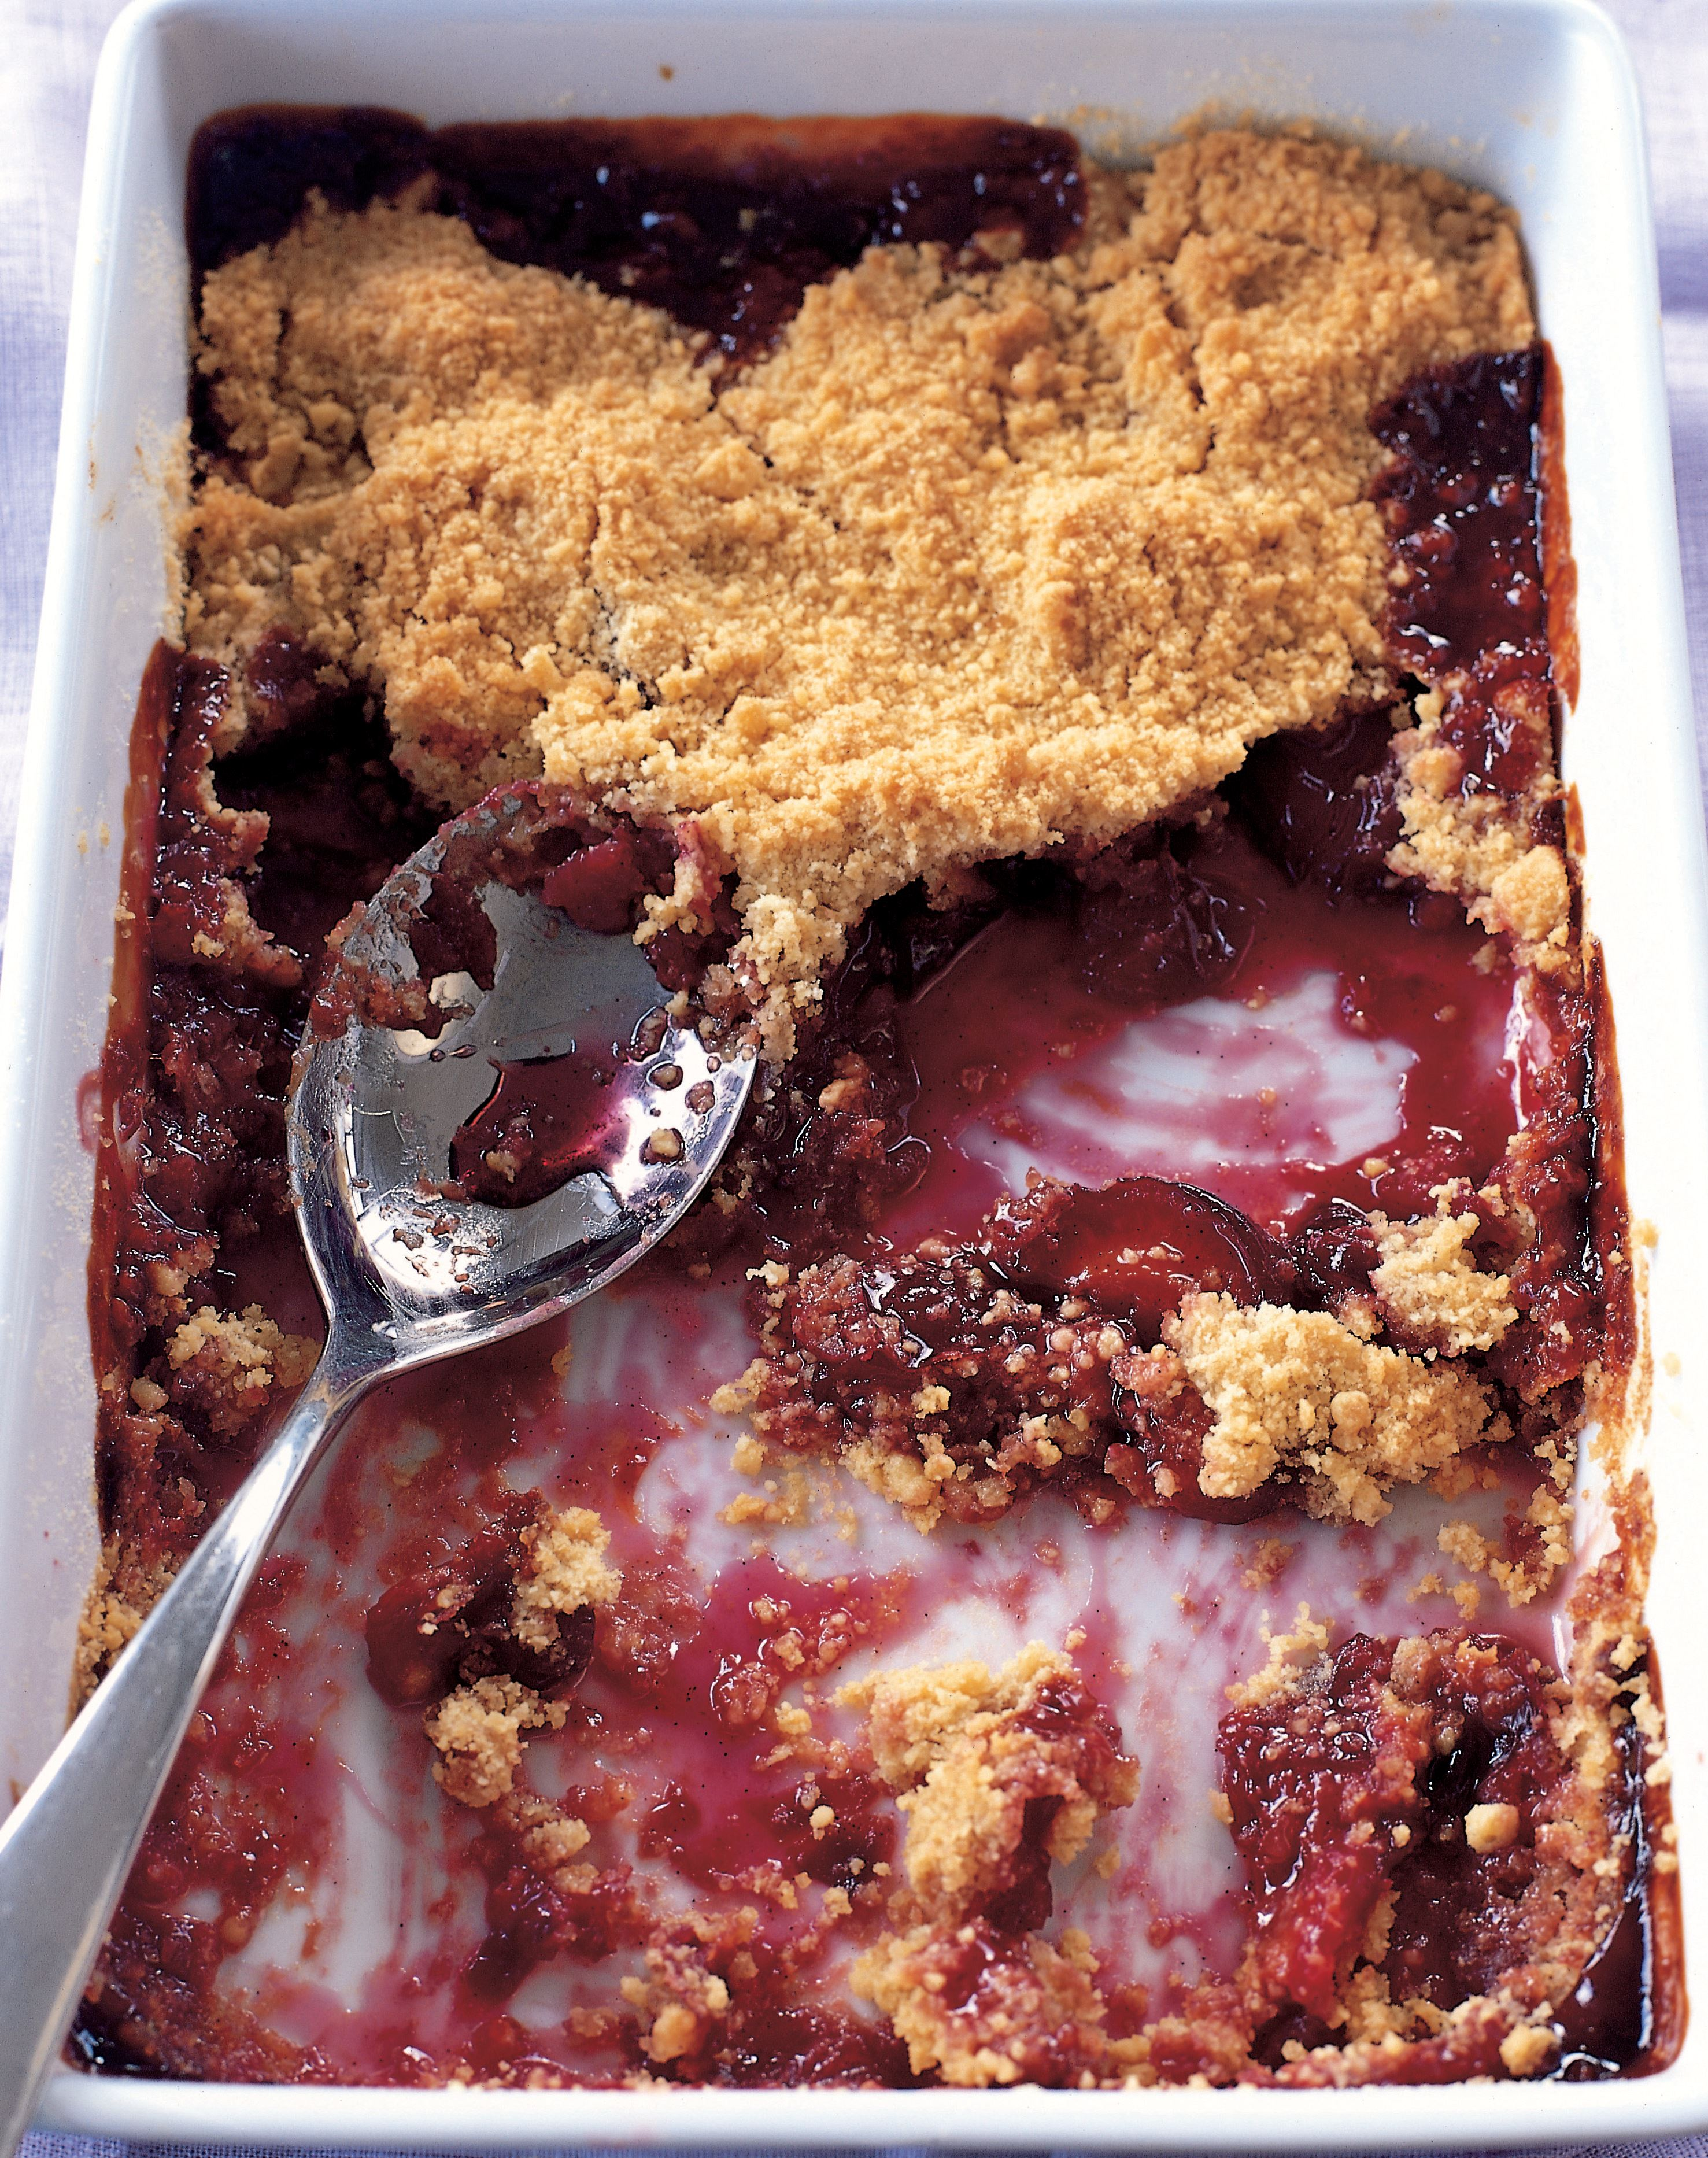 Spicy plum crumble